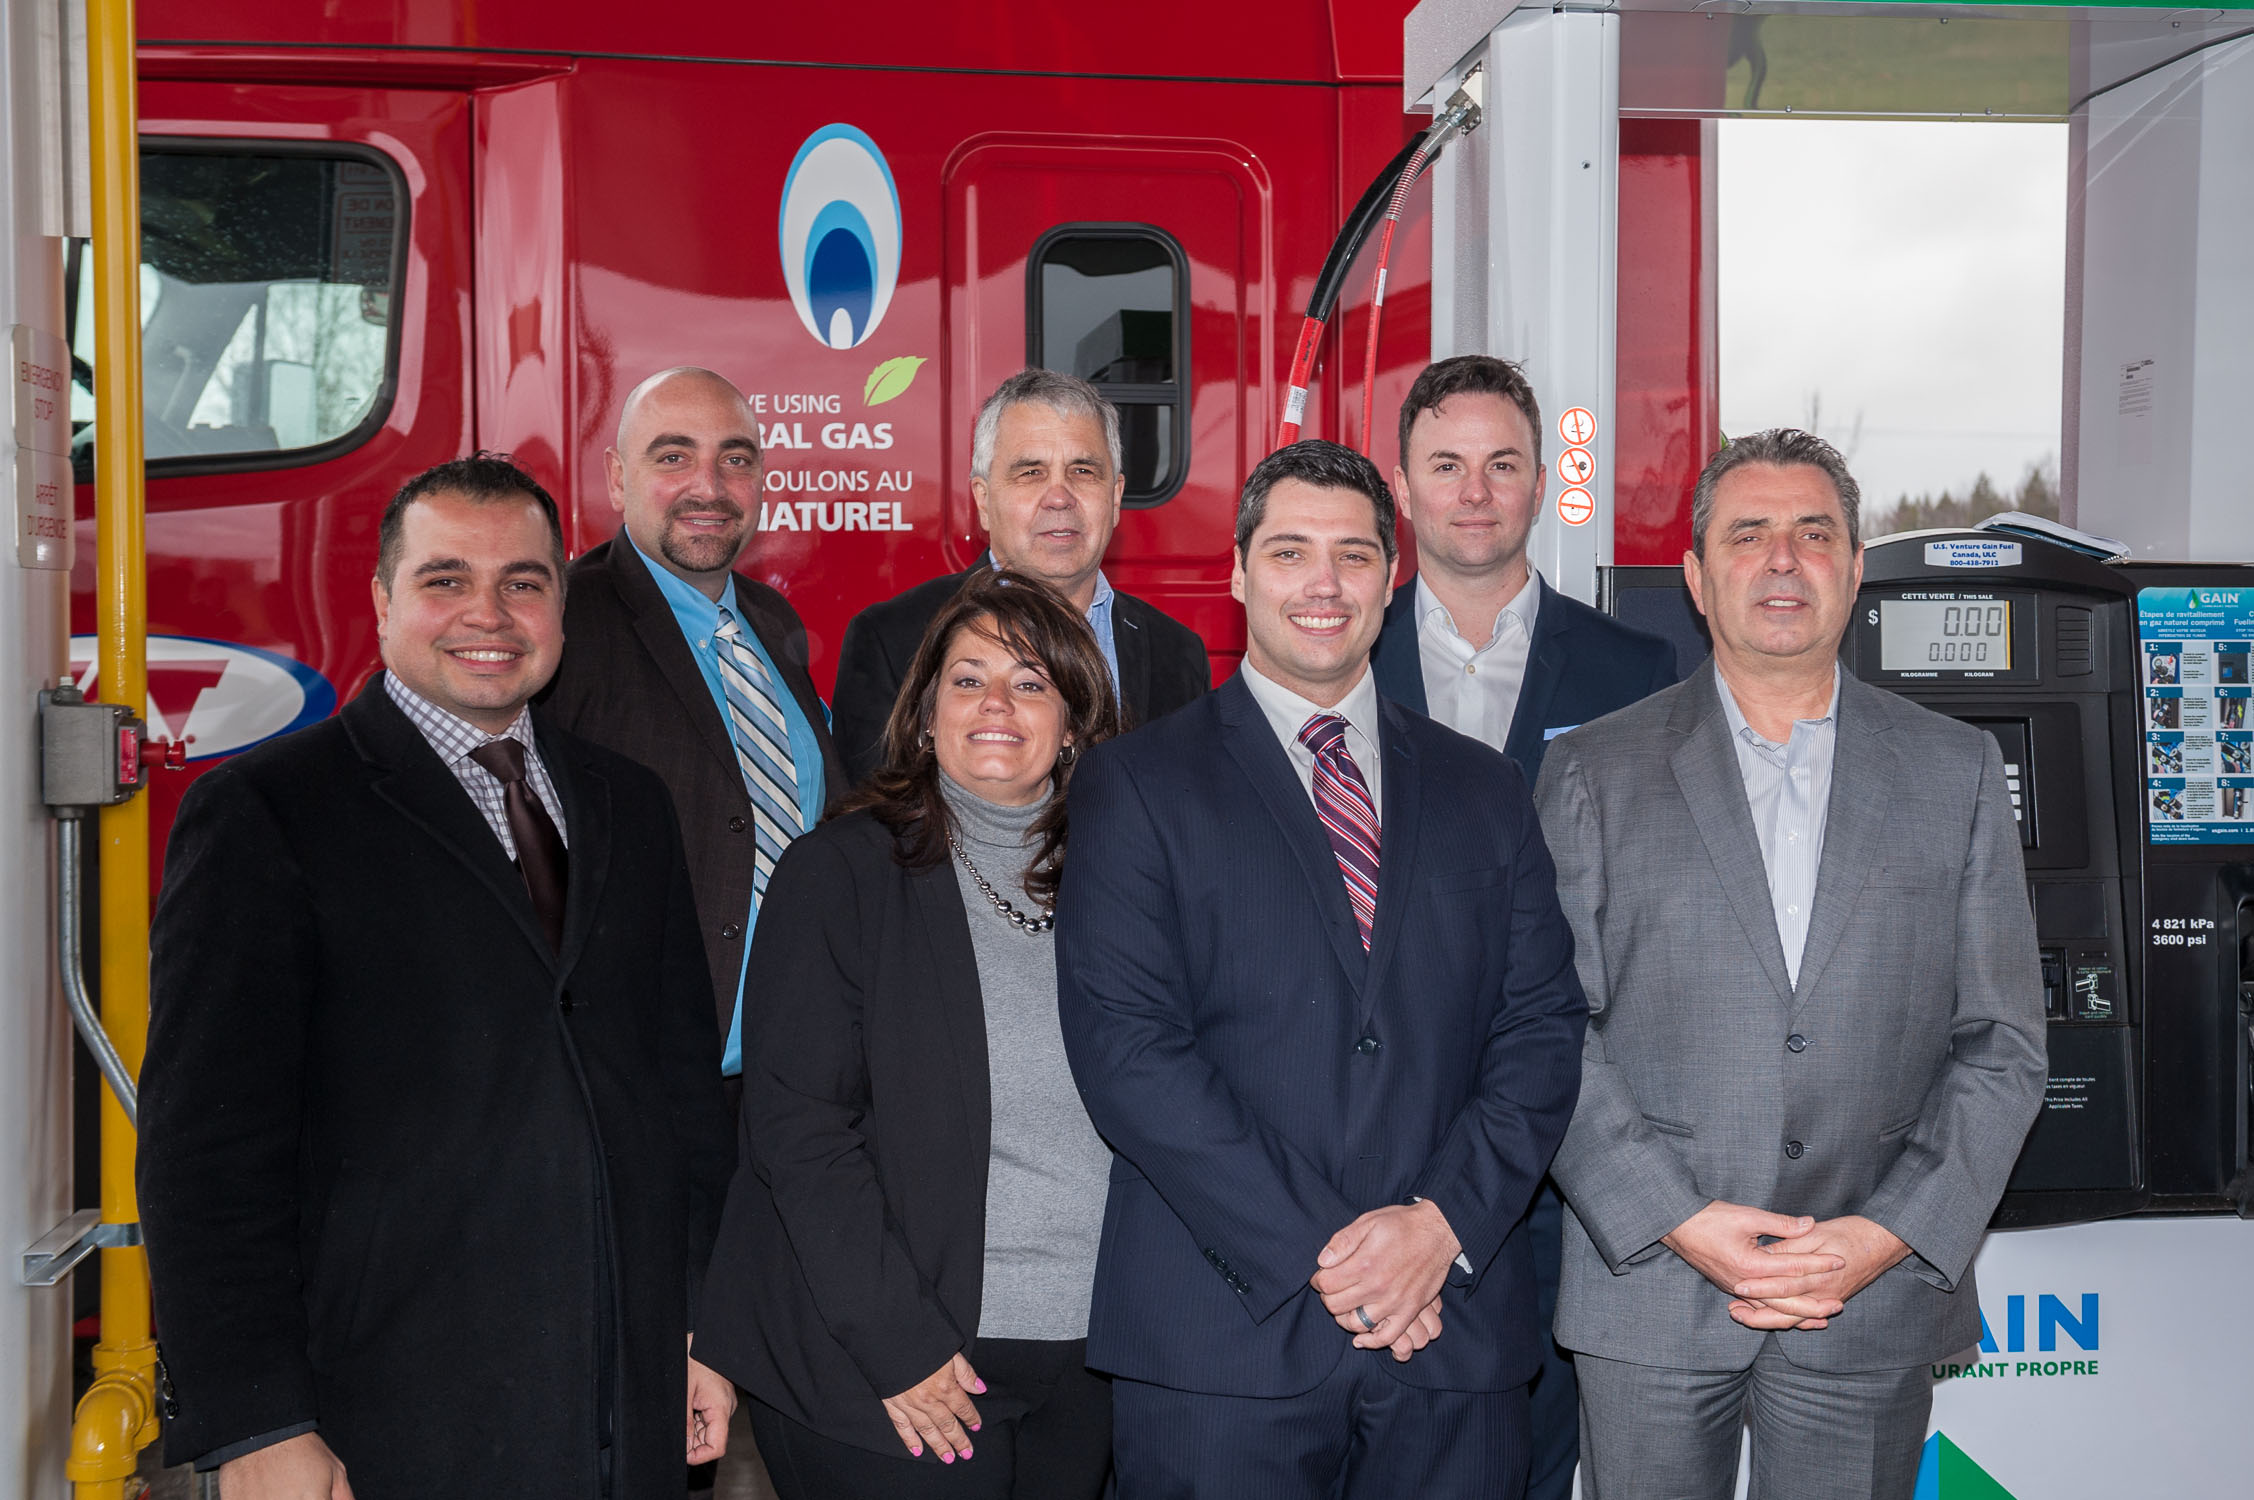 GAIN Clean Fuel celebrates opening of first CNG public station in Quebec